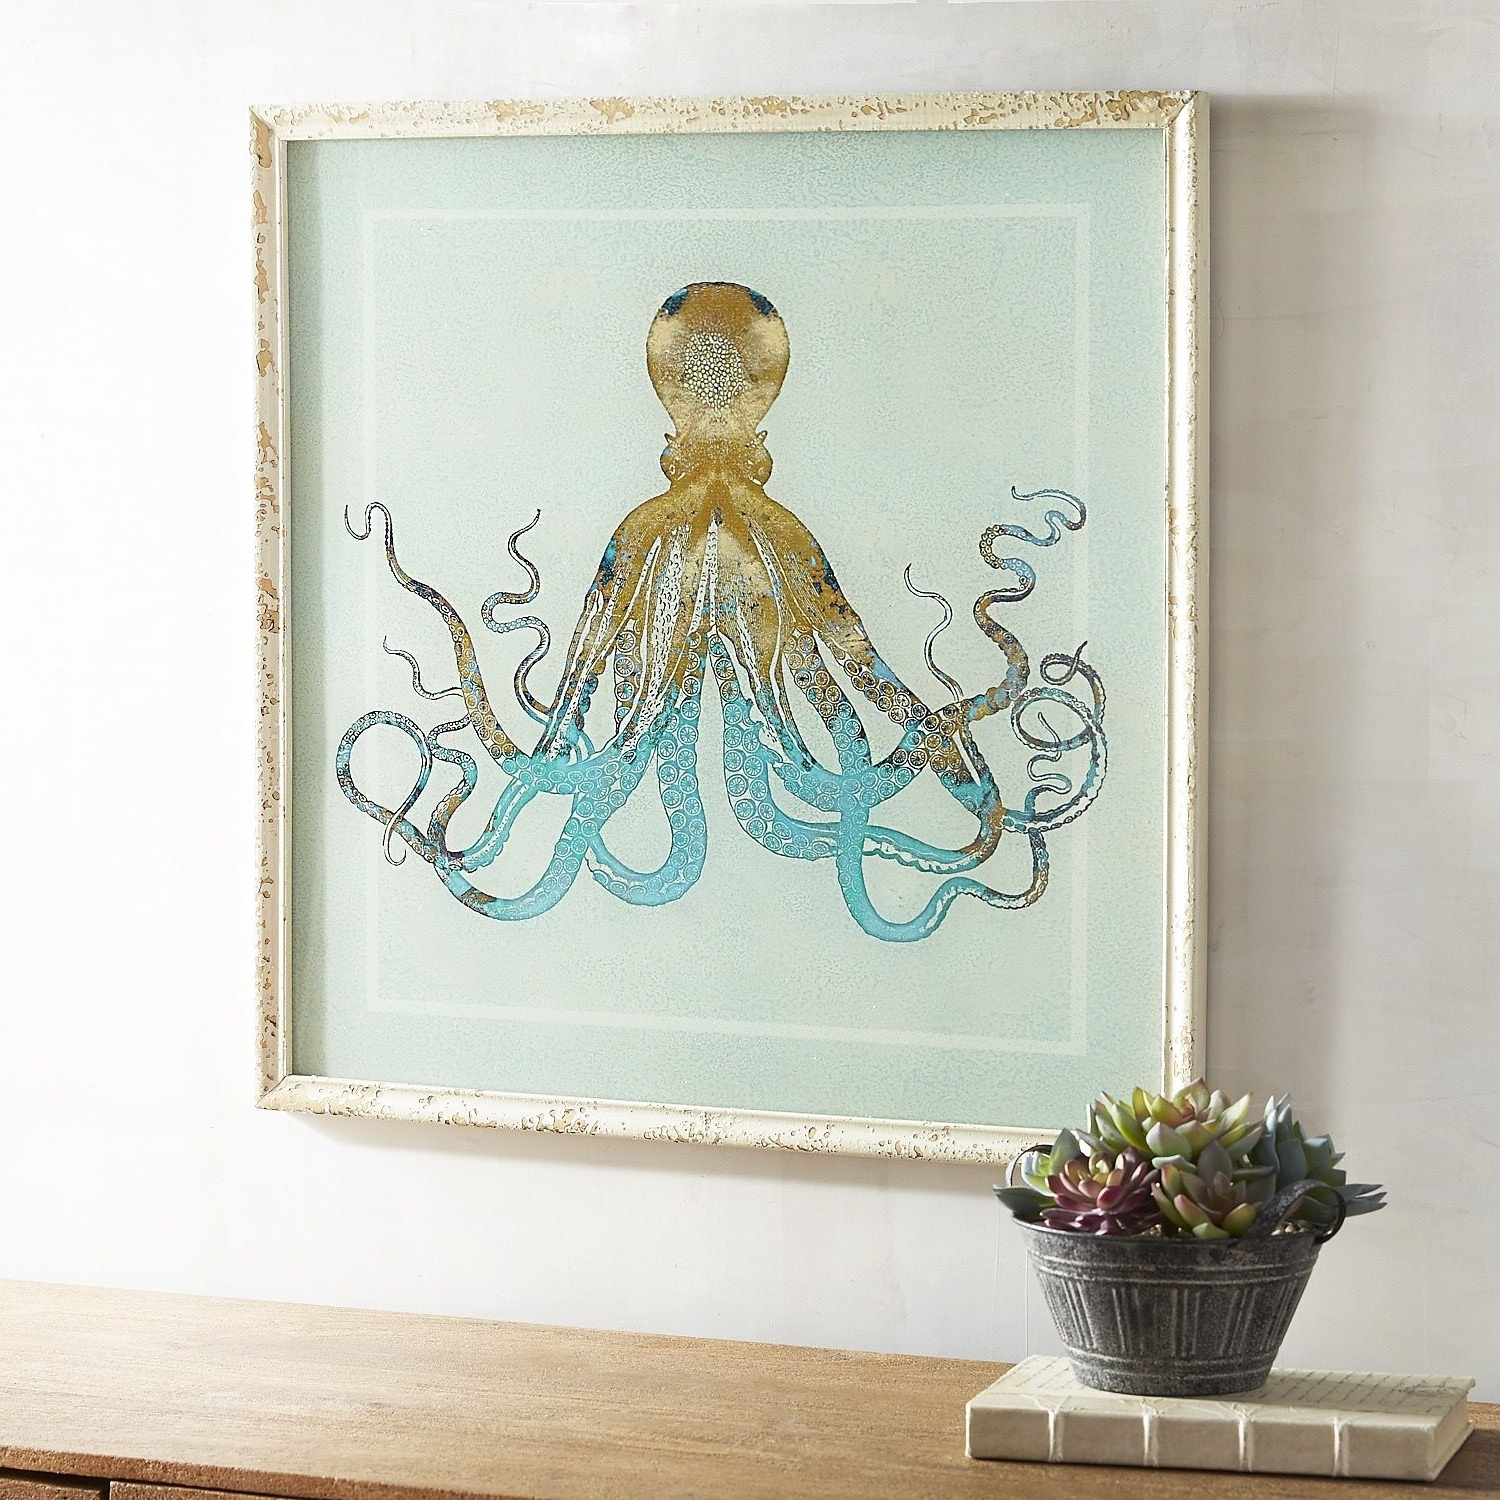 Most Current Pier 1 Wall Art With Regard To Octopus Wall Art Pier 1 Imports, Pier 1 Wall Art – Swinki Morskie (View 9 of 20)